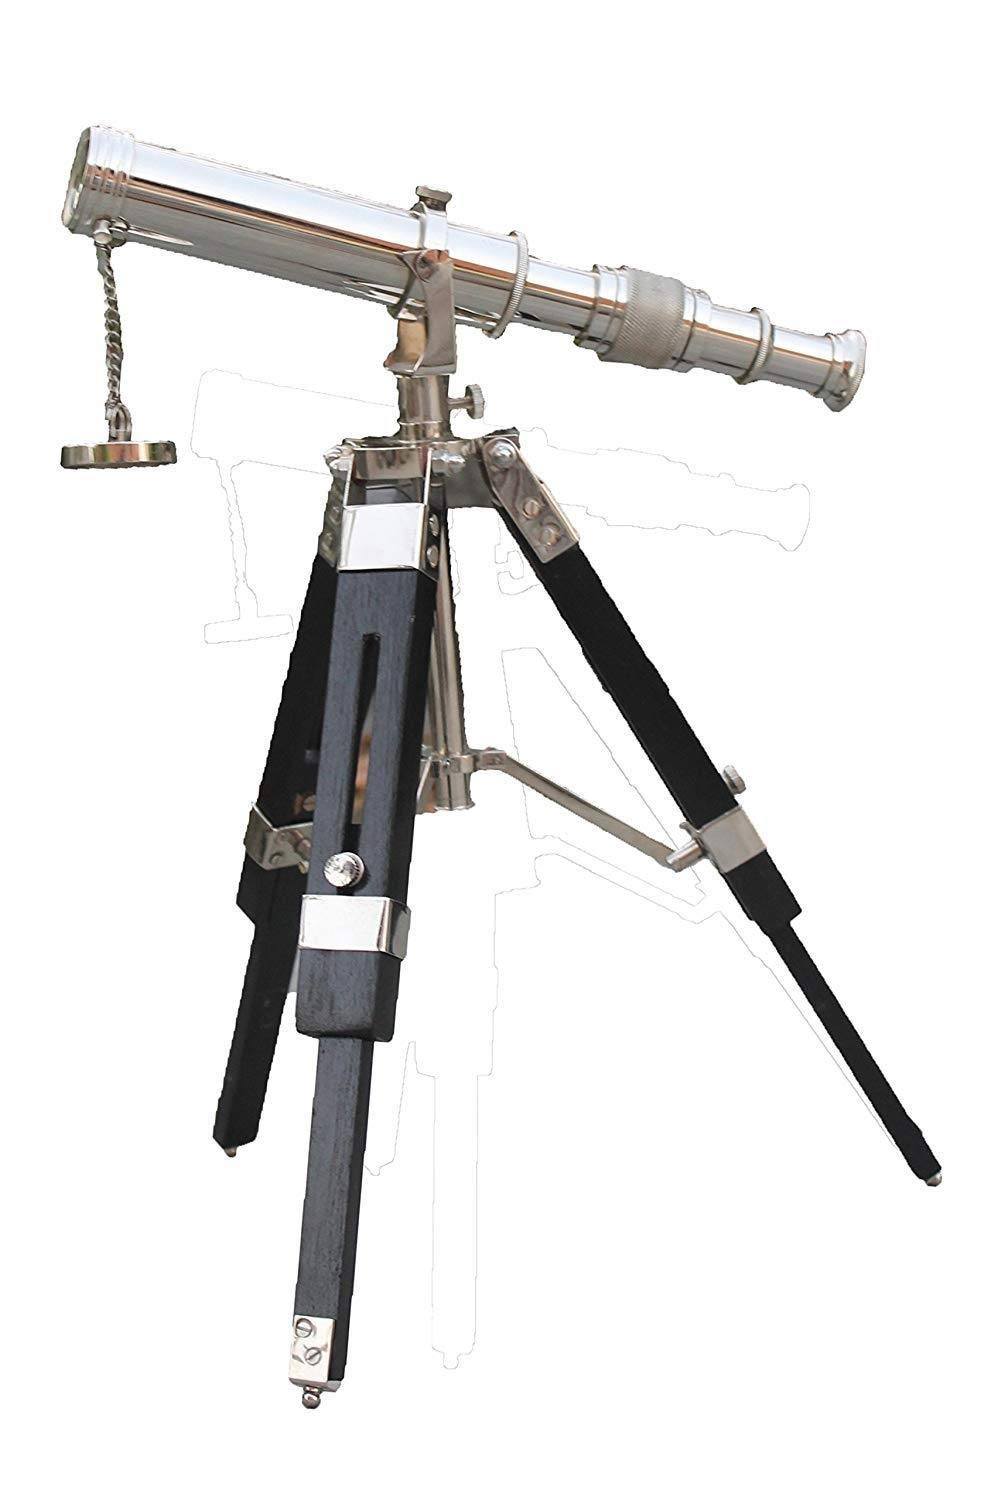 Arsh Nautical Brass Antique Chrome Telescope Double Barrel with Black Tripod Stand